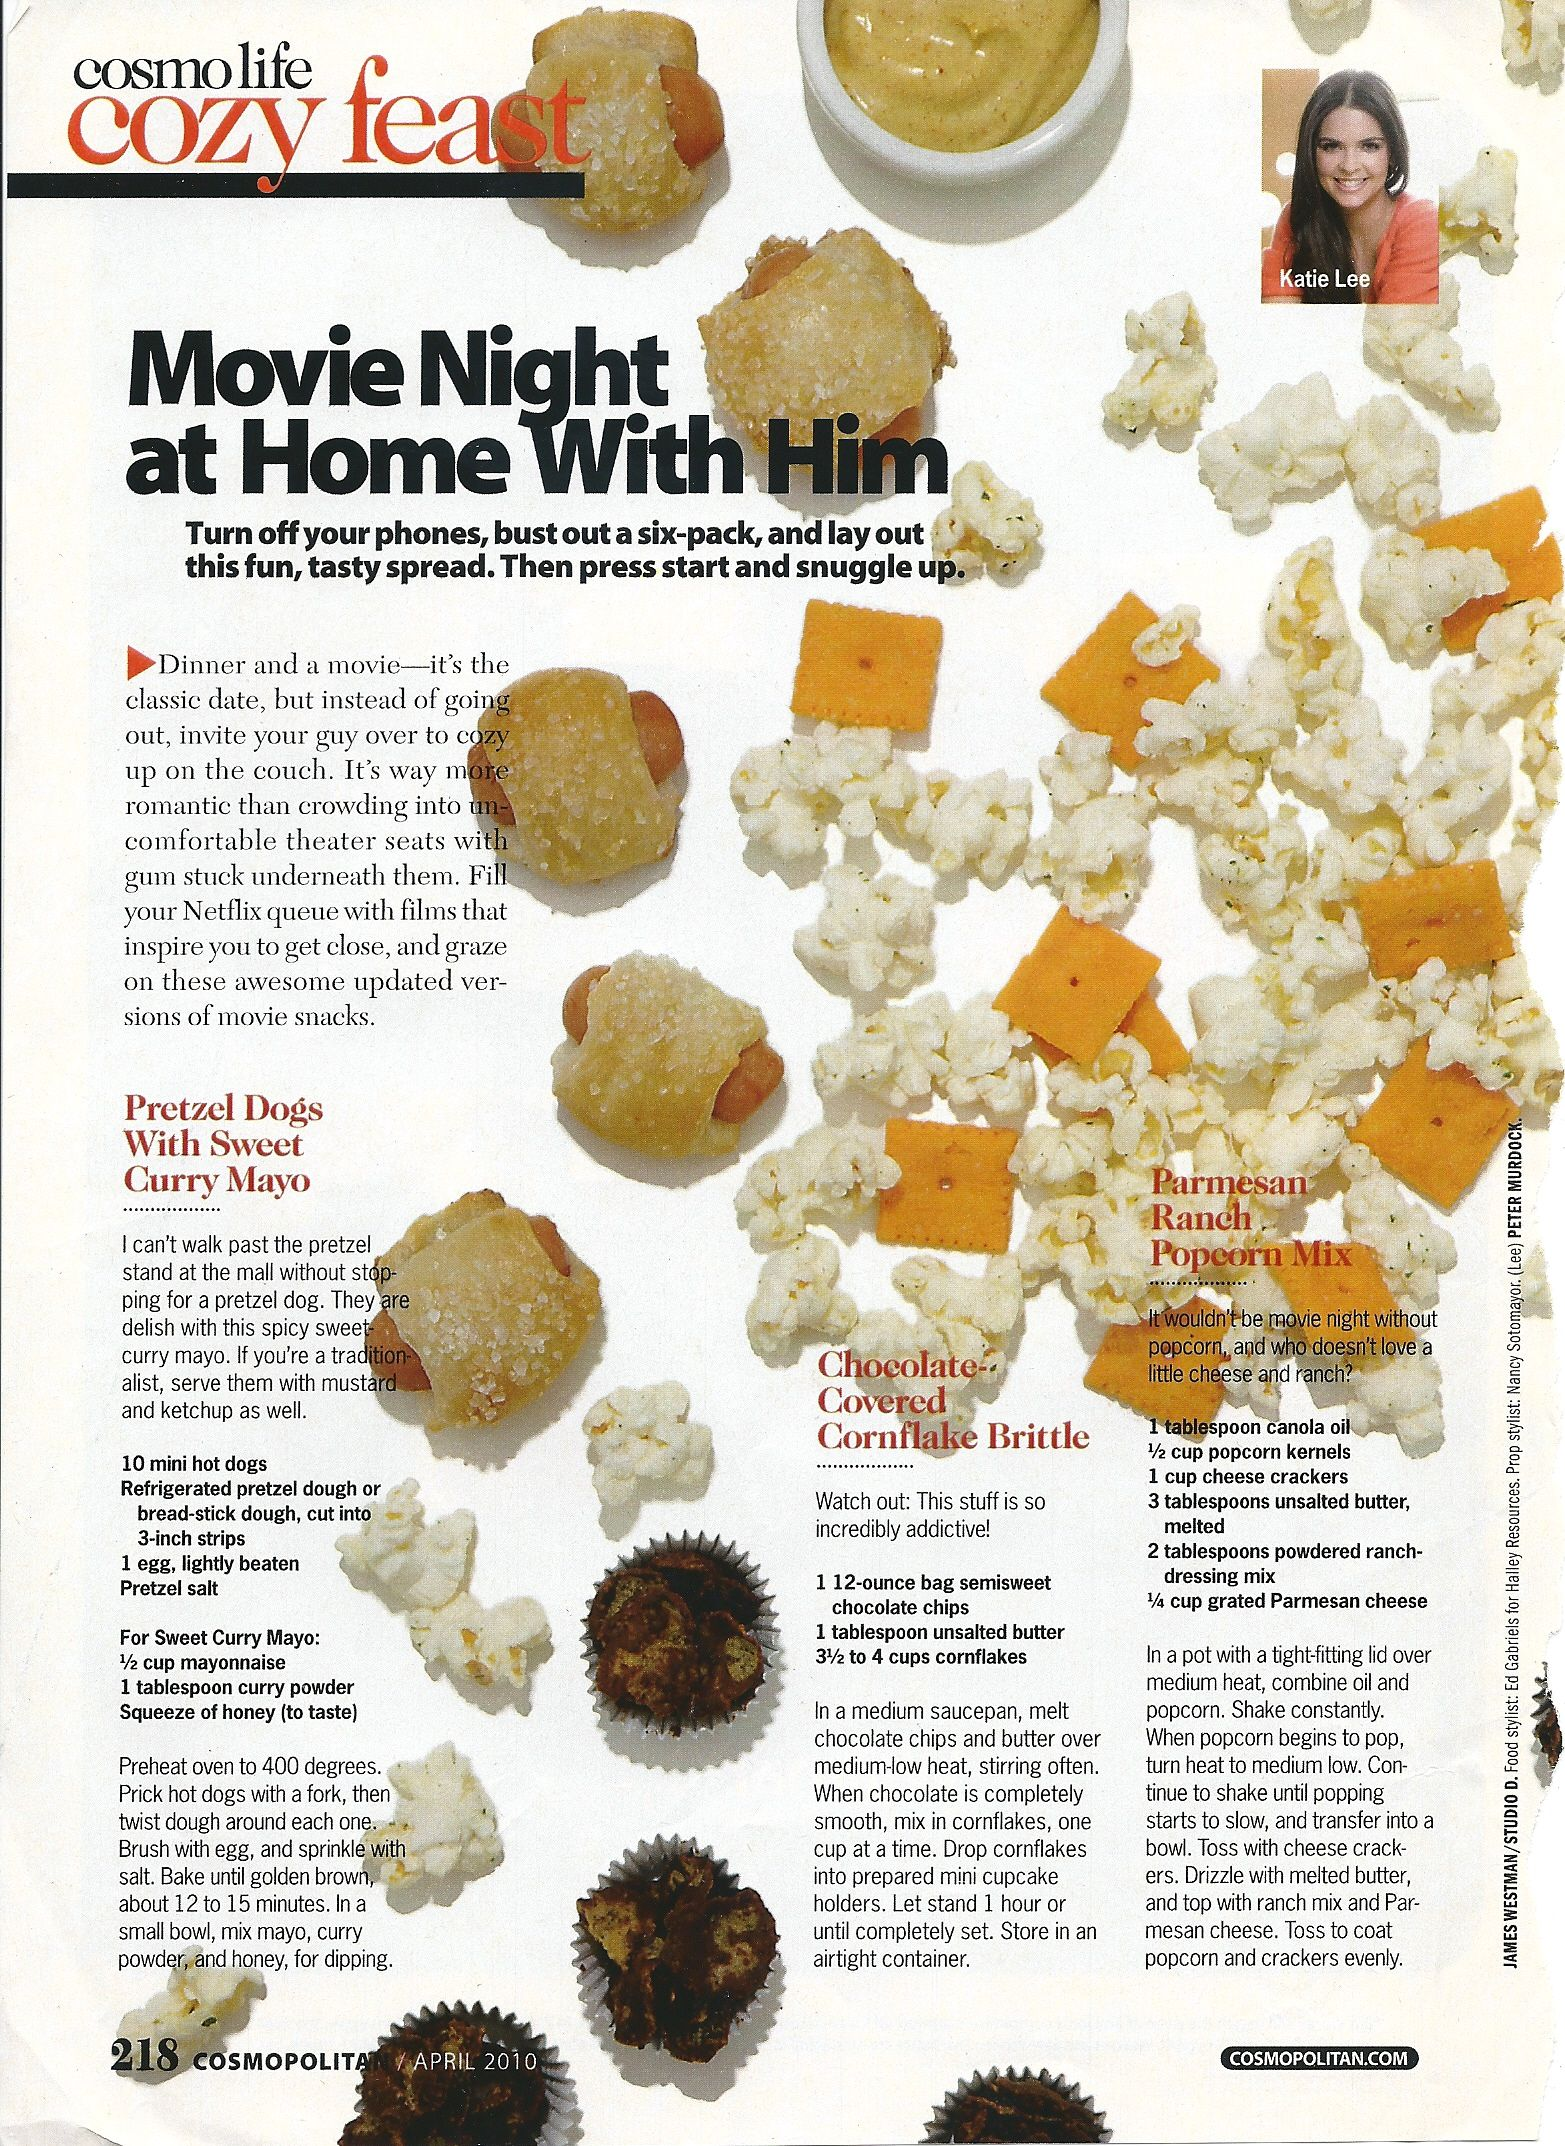 Movie Night At Home With Him Ideas   Home movie nights   Pinterest